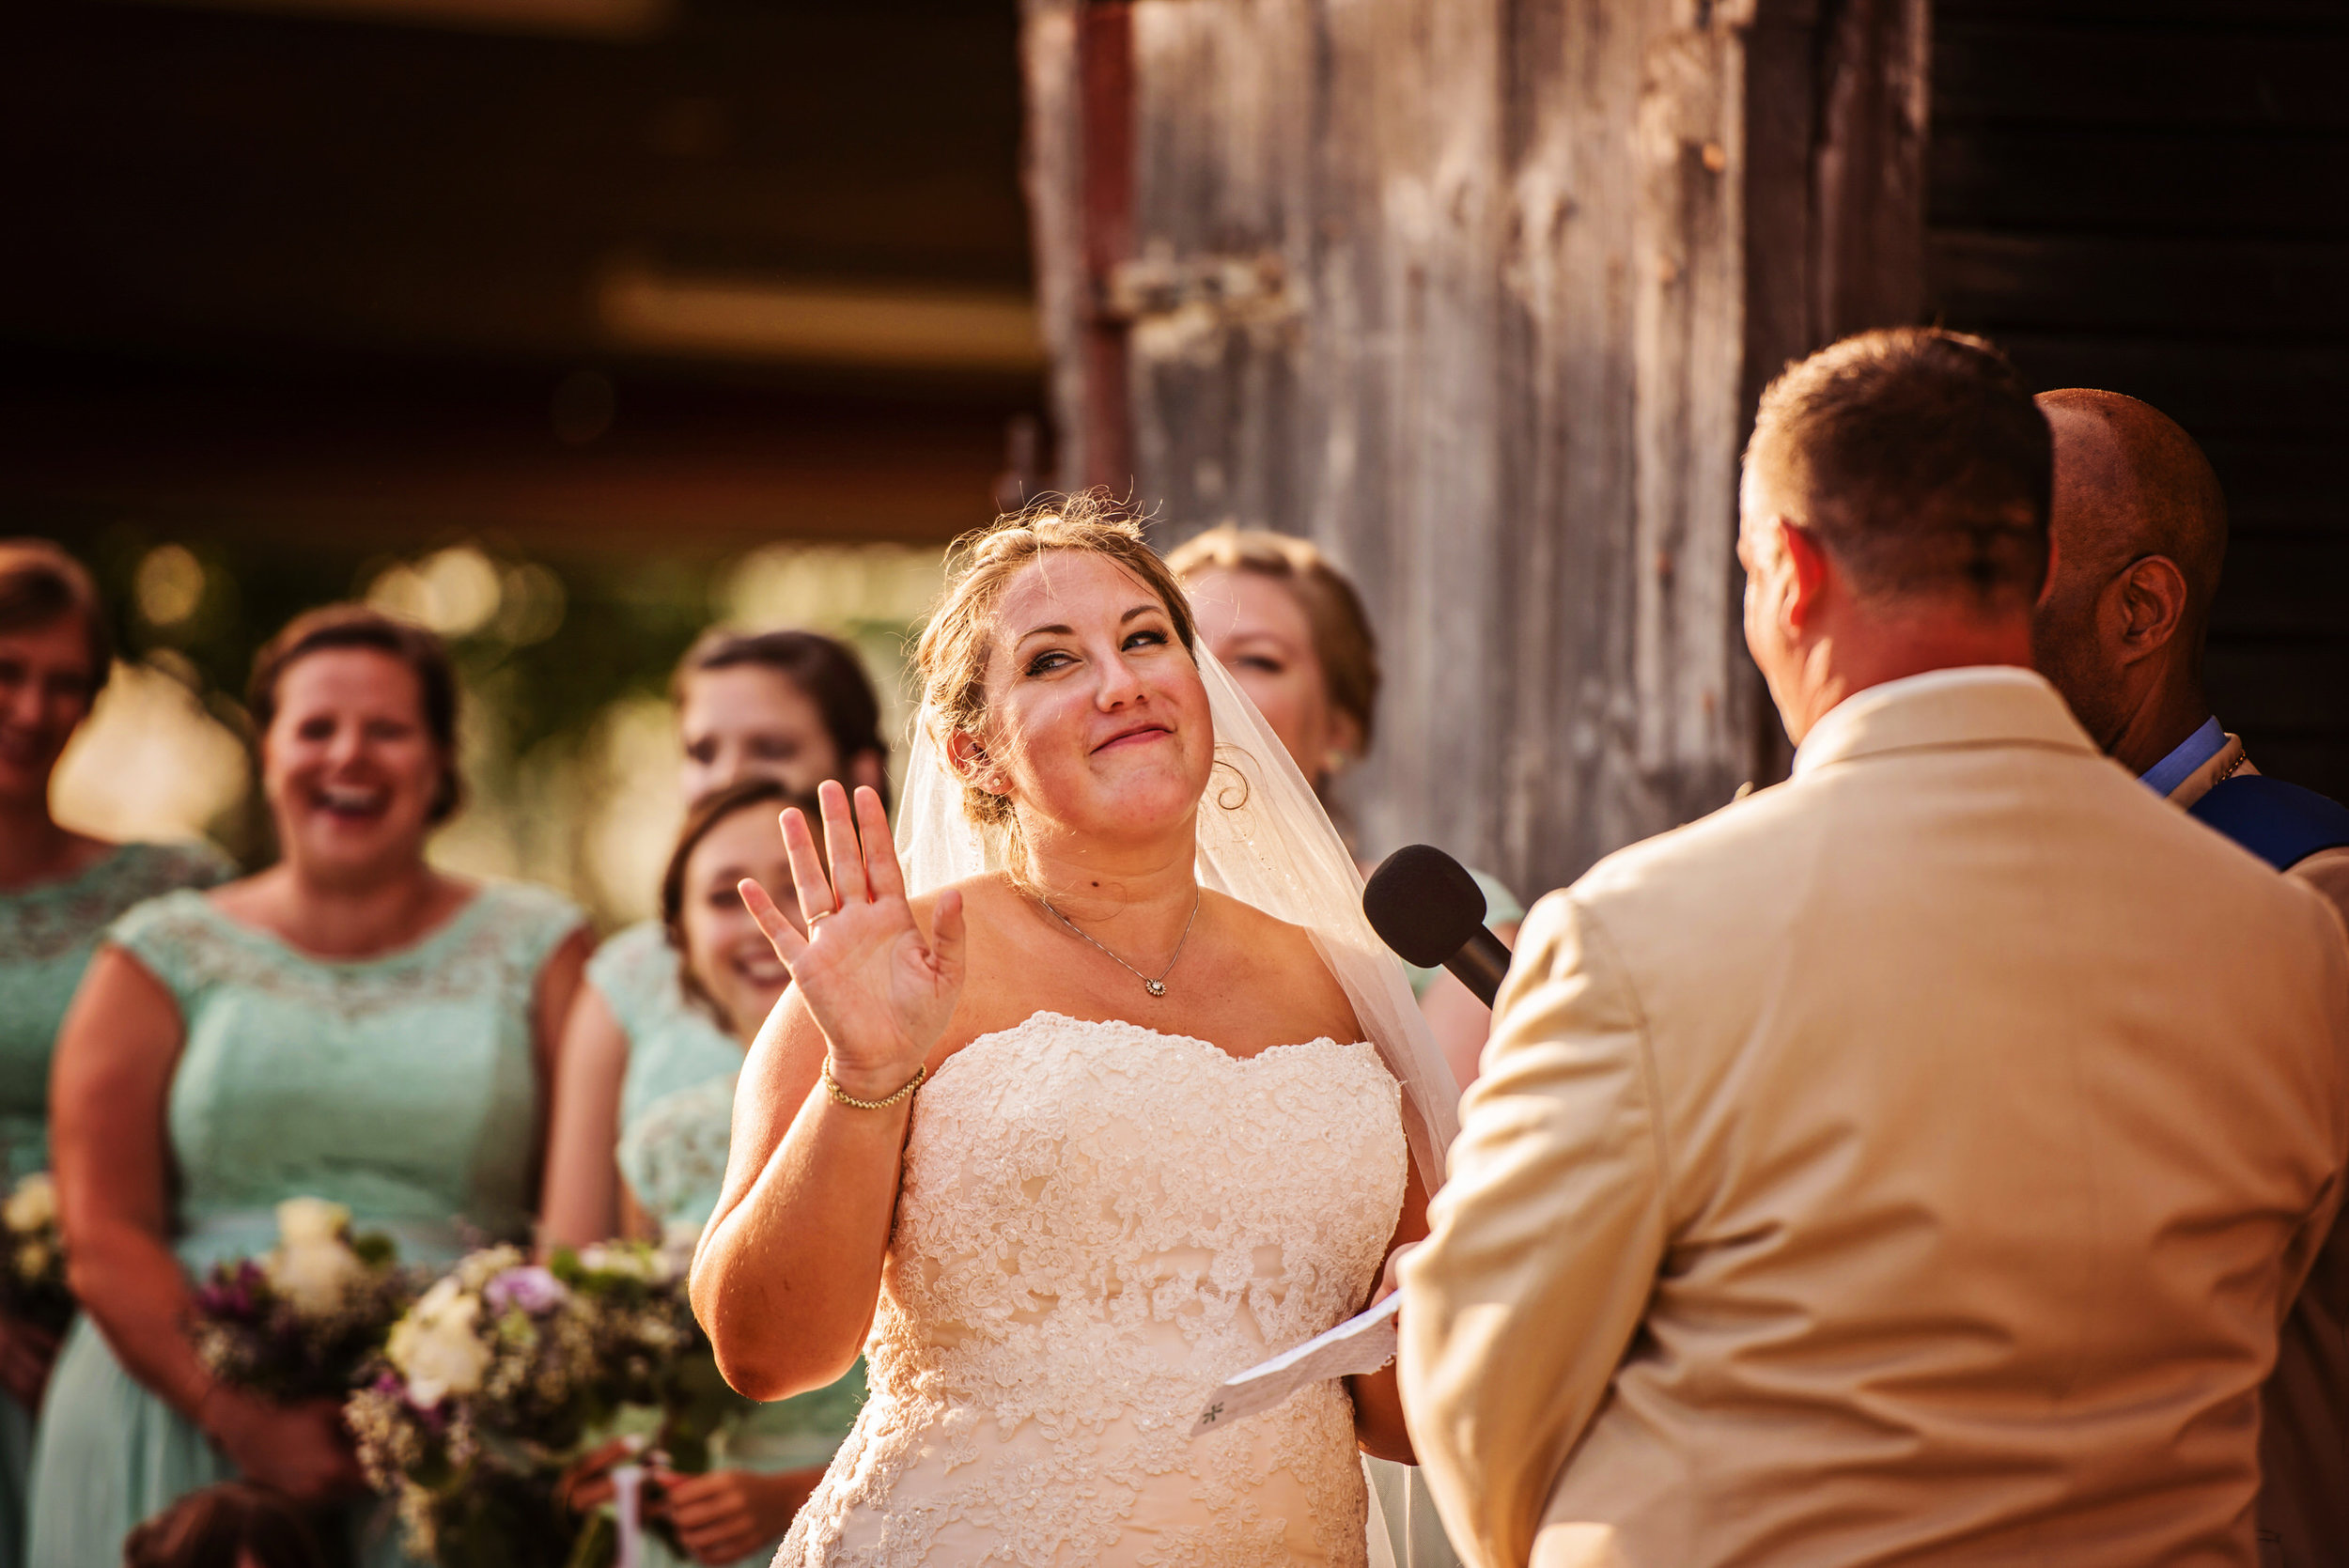 LiganoreWineryWedding-Amber&Andy-Ceremony-72.jpg